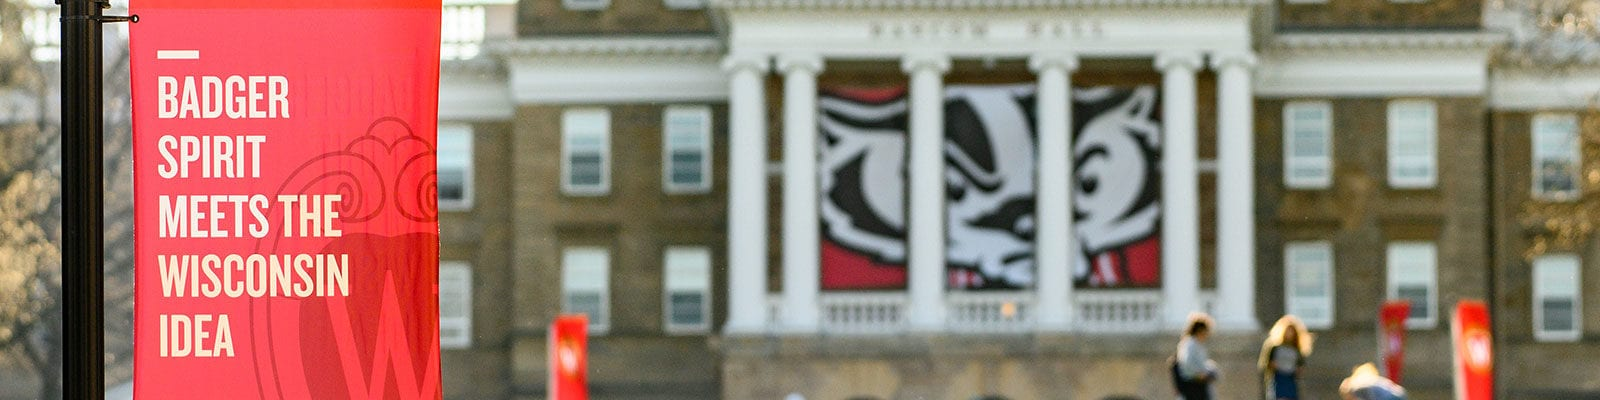 "Bascom Hall, a flag flies in front that says ""Badger spirit meets the Wisconsin Idea"""